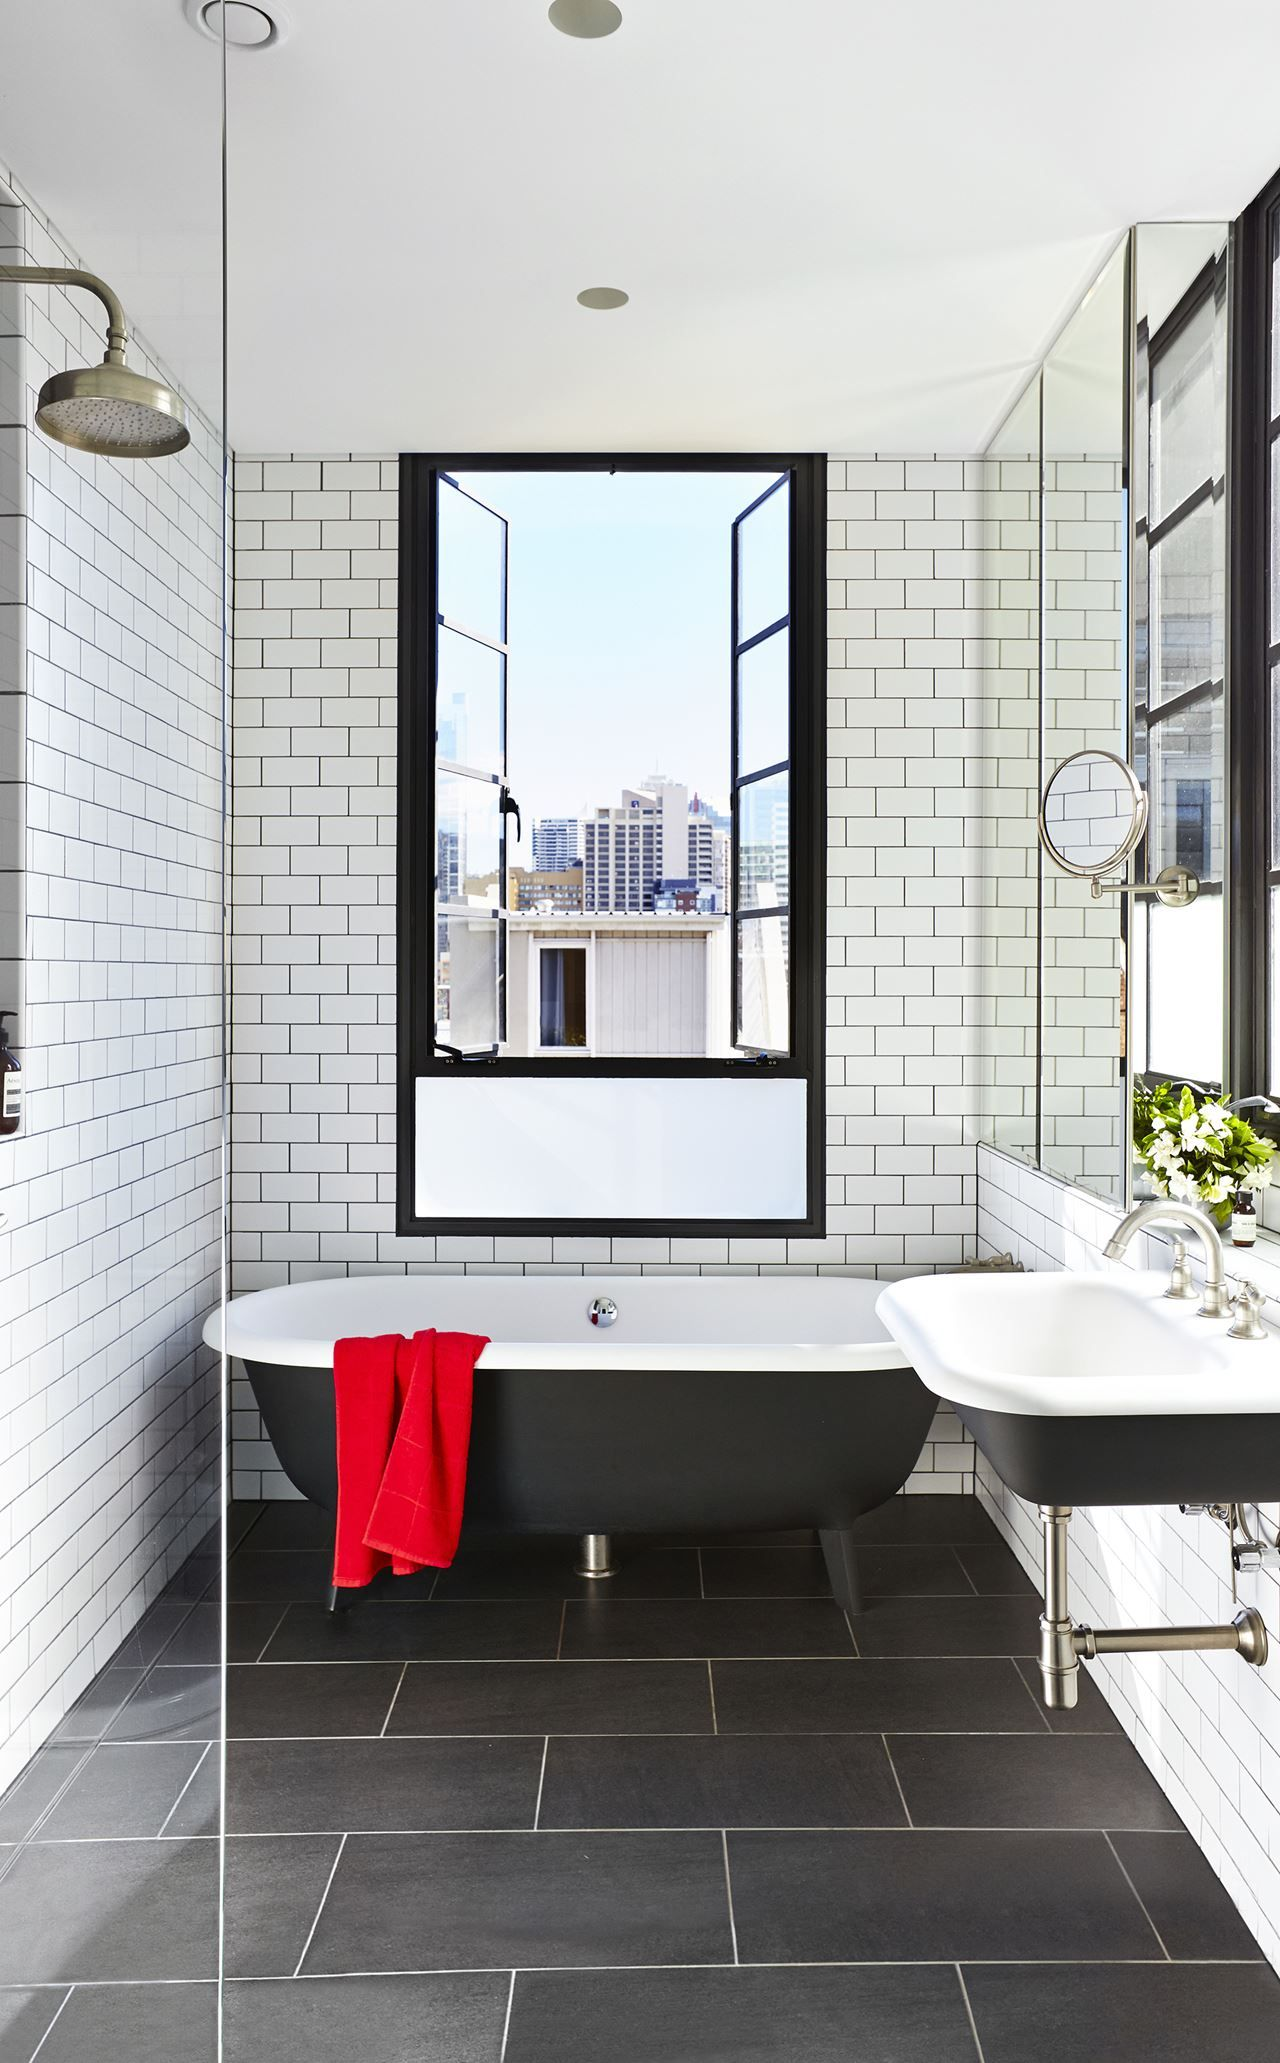 Clic Bathroom Elements Have Been Deployed With A Modern Twist Here Subway Tiles Are